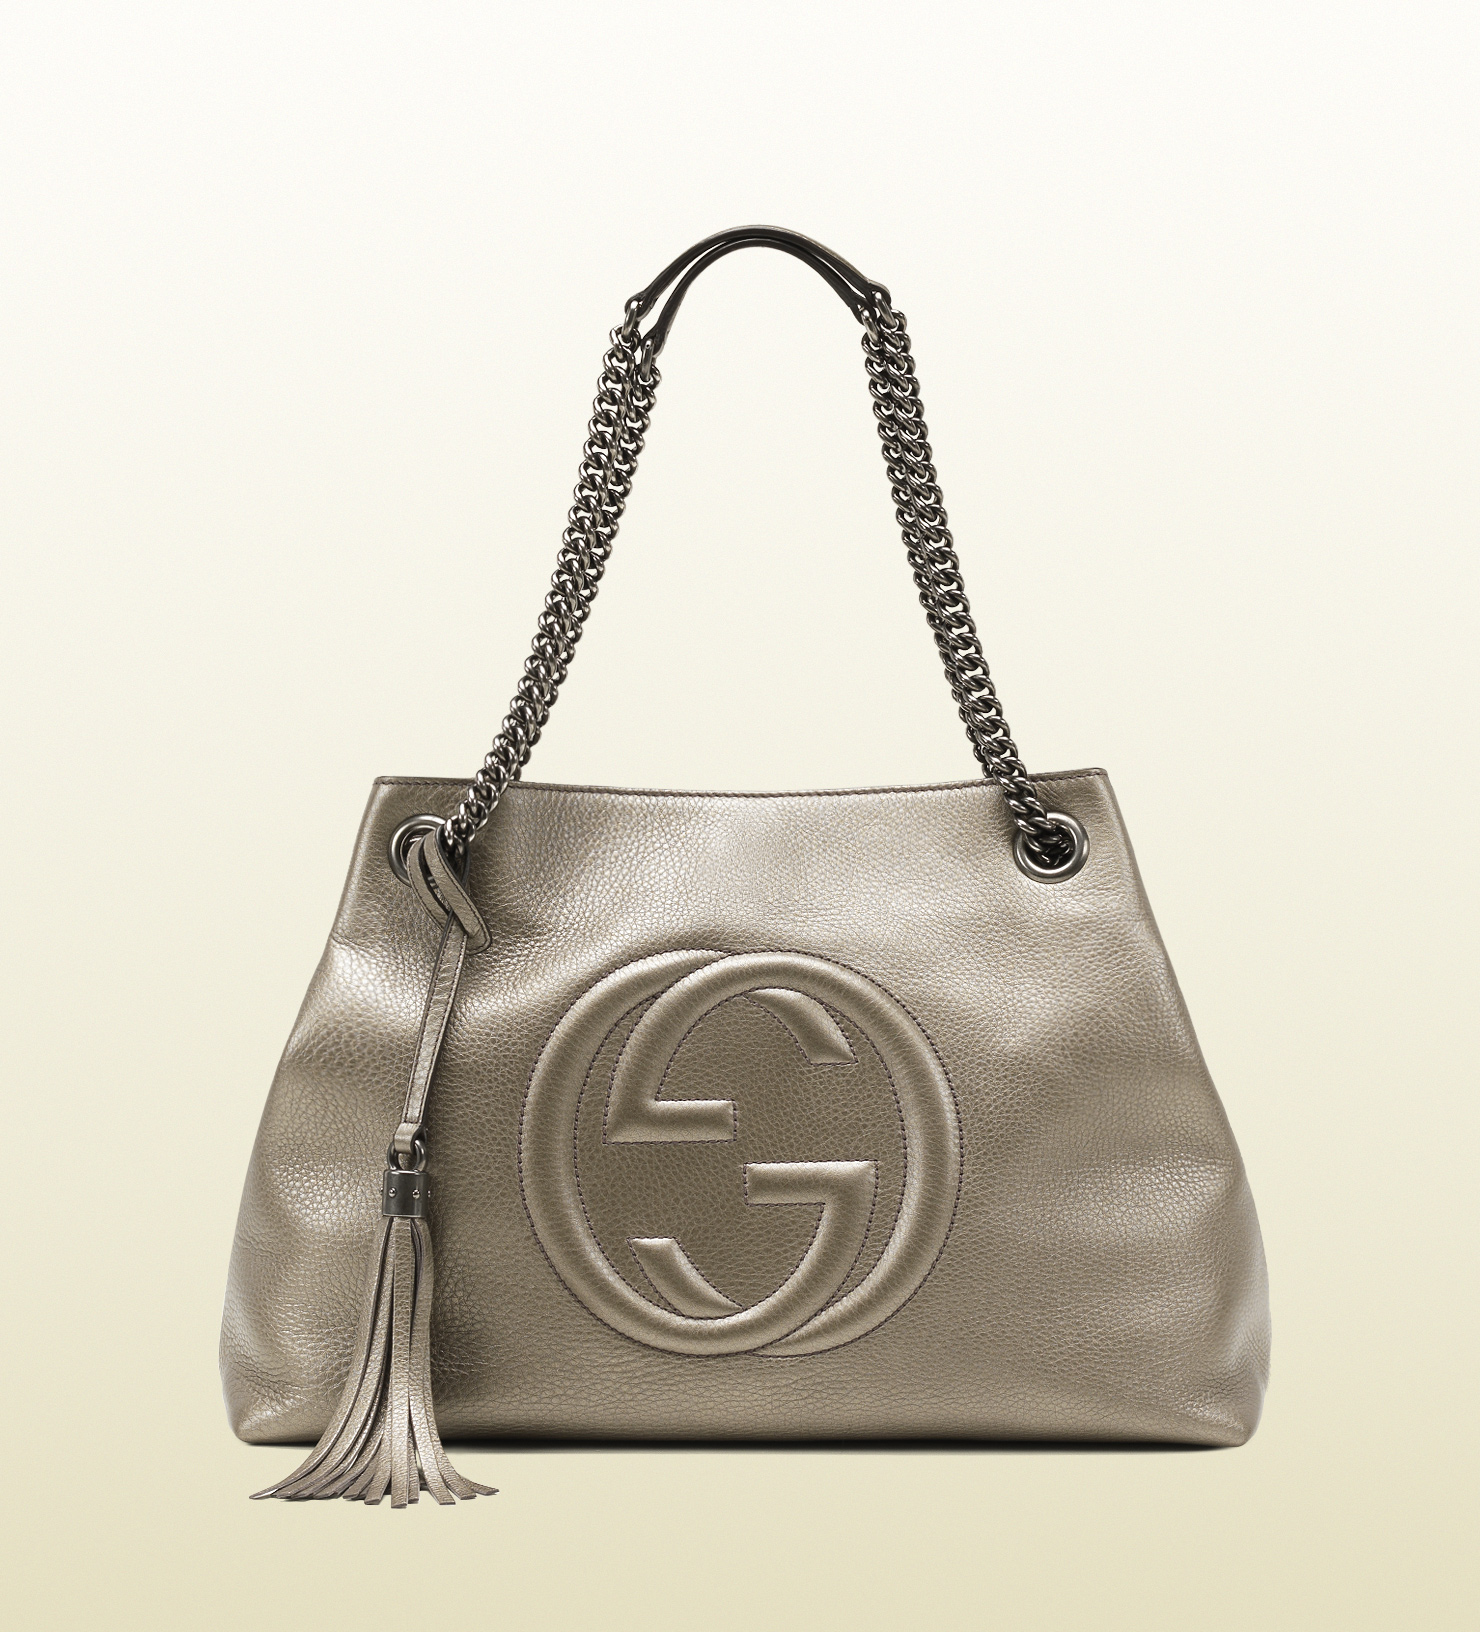 Lyst Gucci Soho Metallic Leather Chain Shoulder Bag In - Modern Home ... 6248c9c95816b